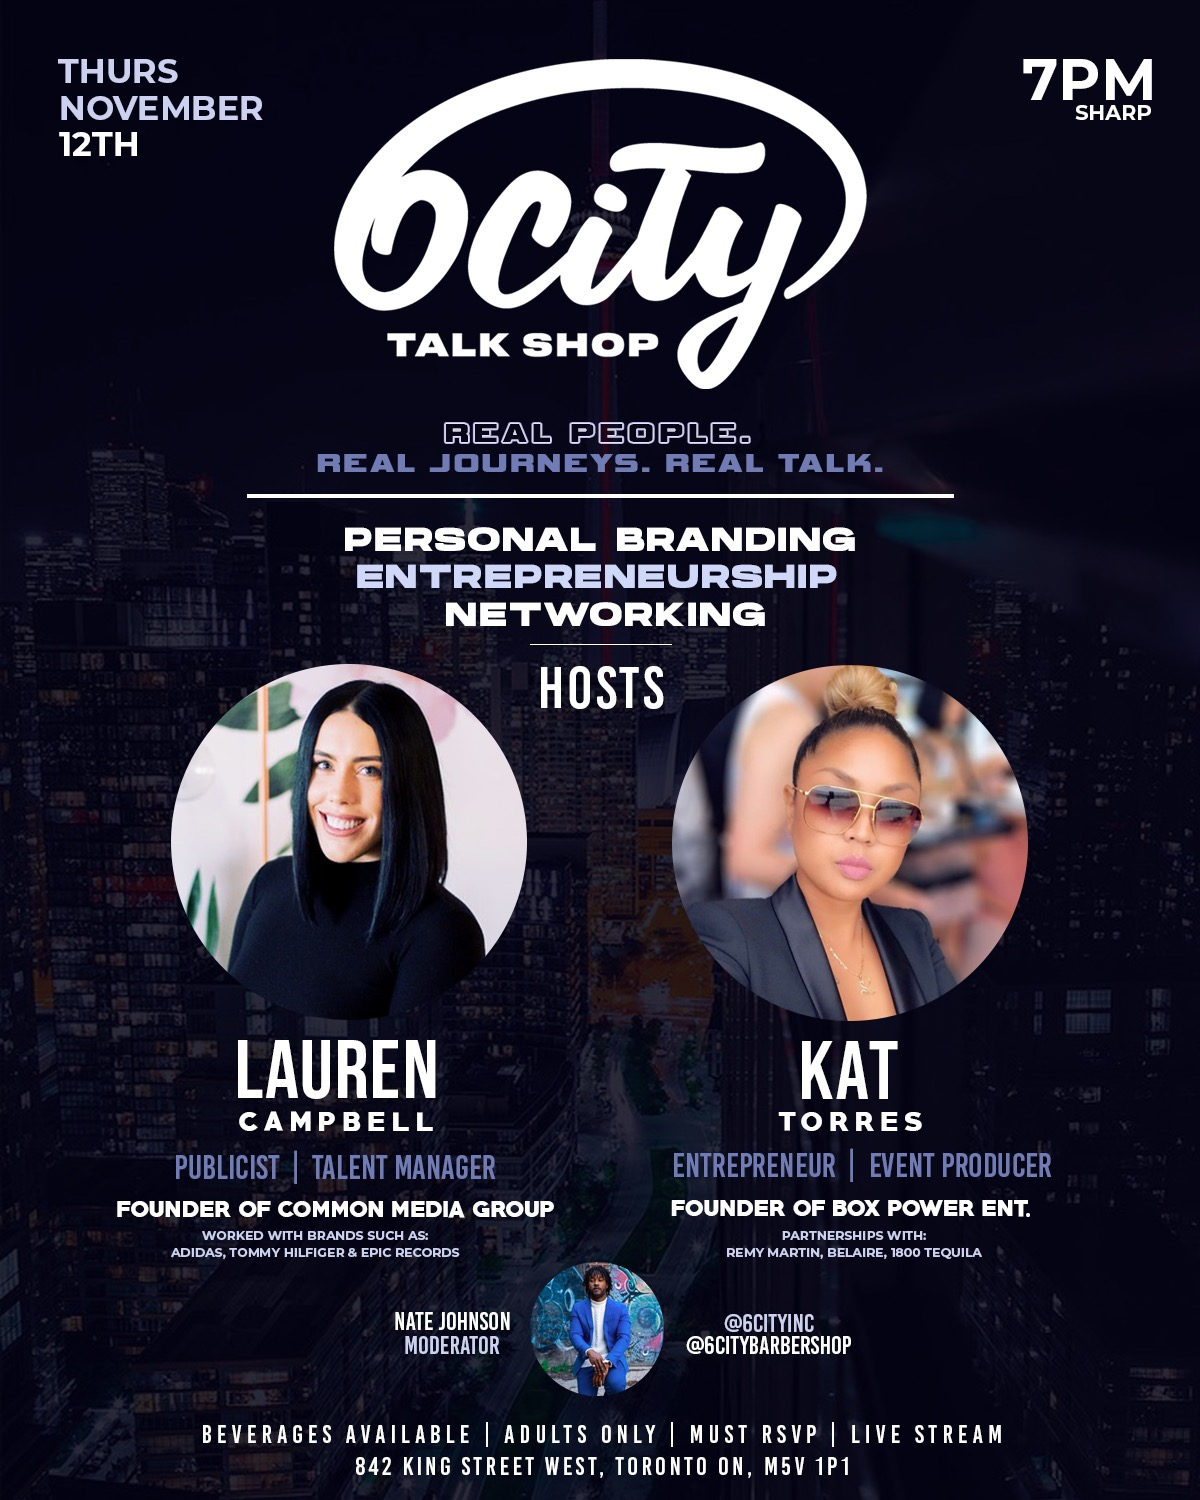 6City Talk Shop Flyer: Personal Branding, Entrepreneurship, Networking